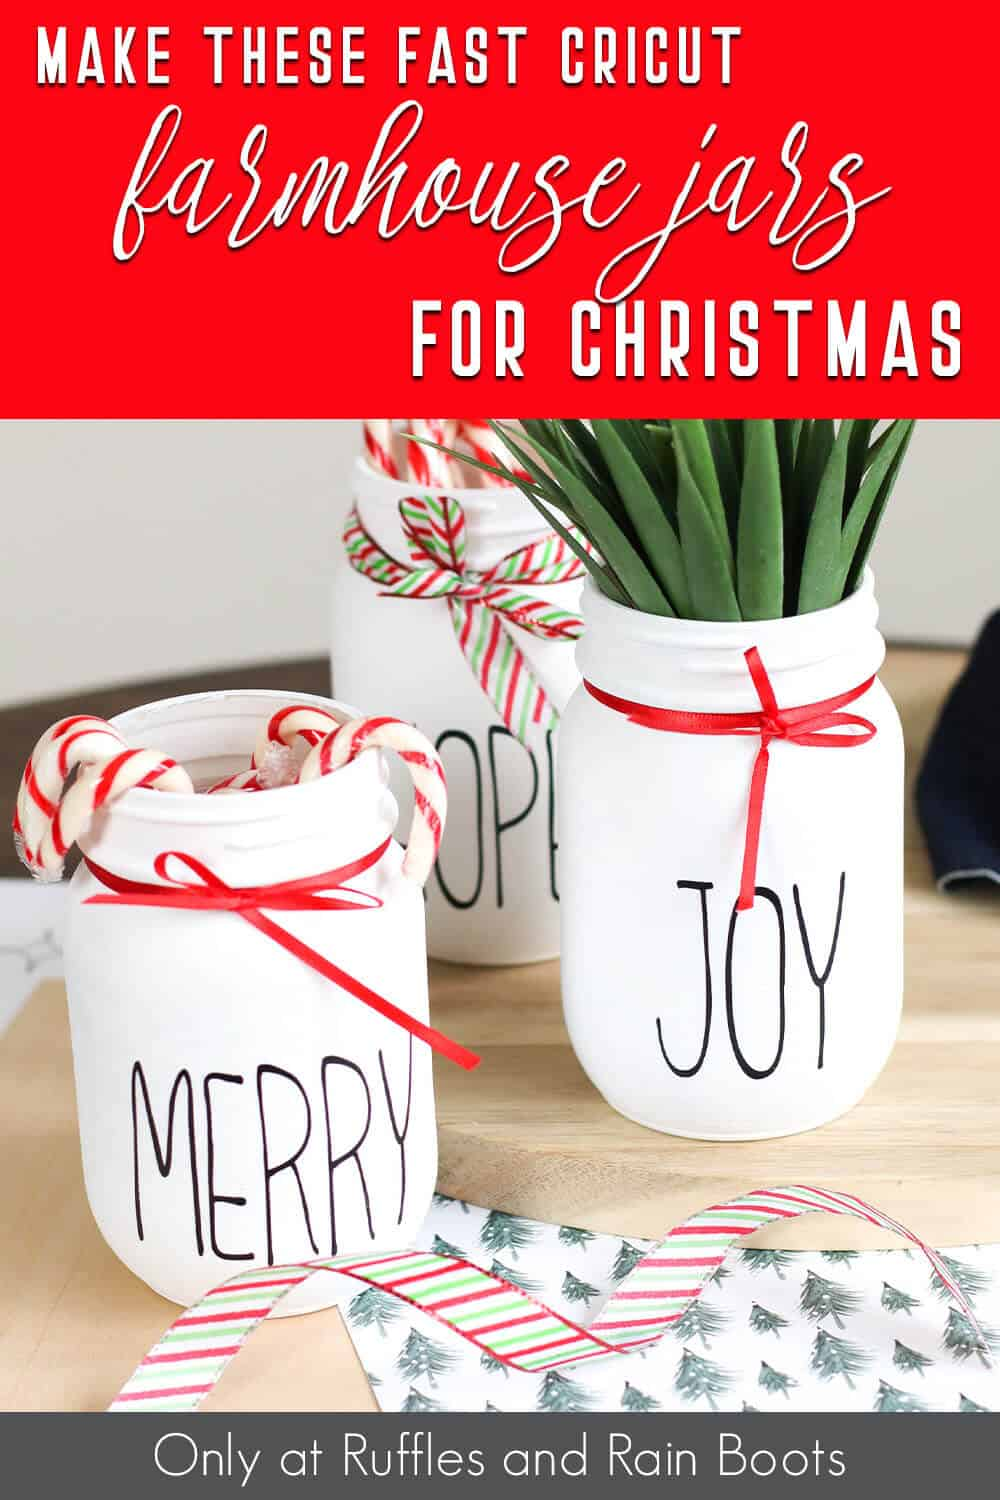 christmas jars cricut craft with text which reads make these easy cricut farmhouse jars for christmas